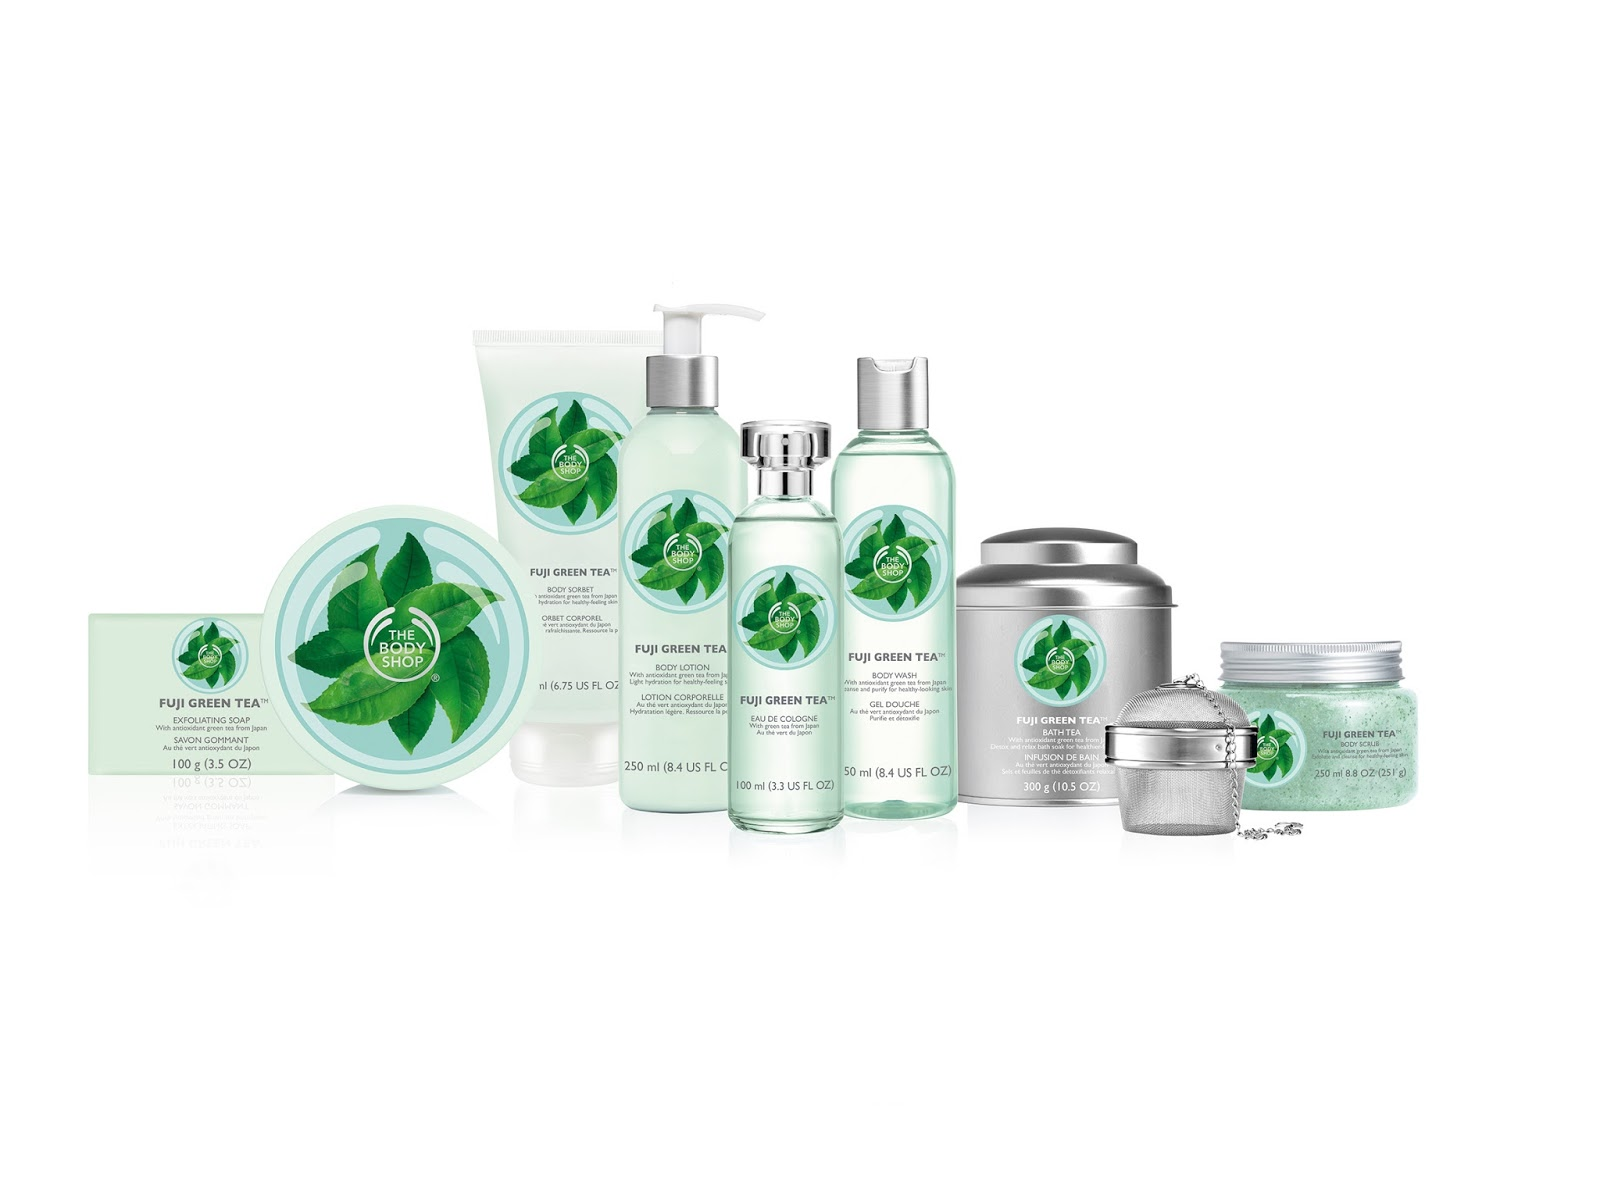 The Body Shop Fuji Green Tea Range